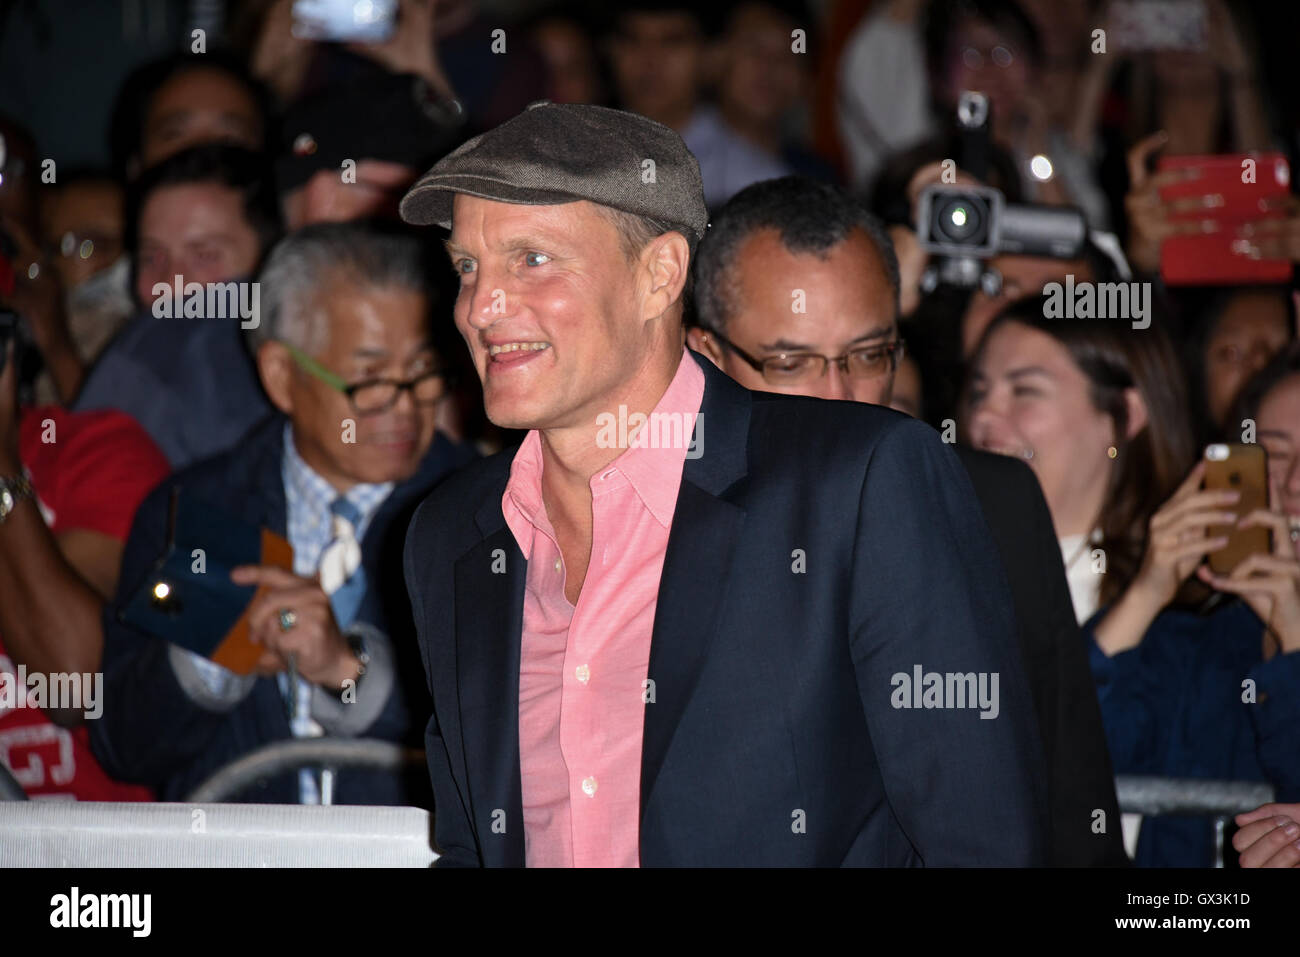 Toronto, Ontario, Canada. 15th Sep, 2016. Actor WOODY HARRELSON attends the 'LBJ' premiere during the 2016 - Stock Image